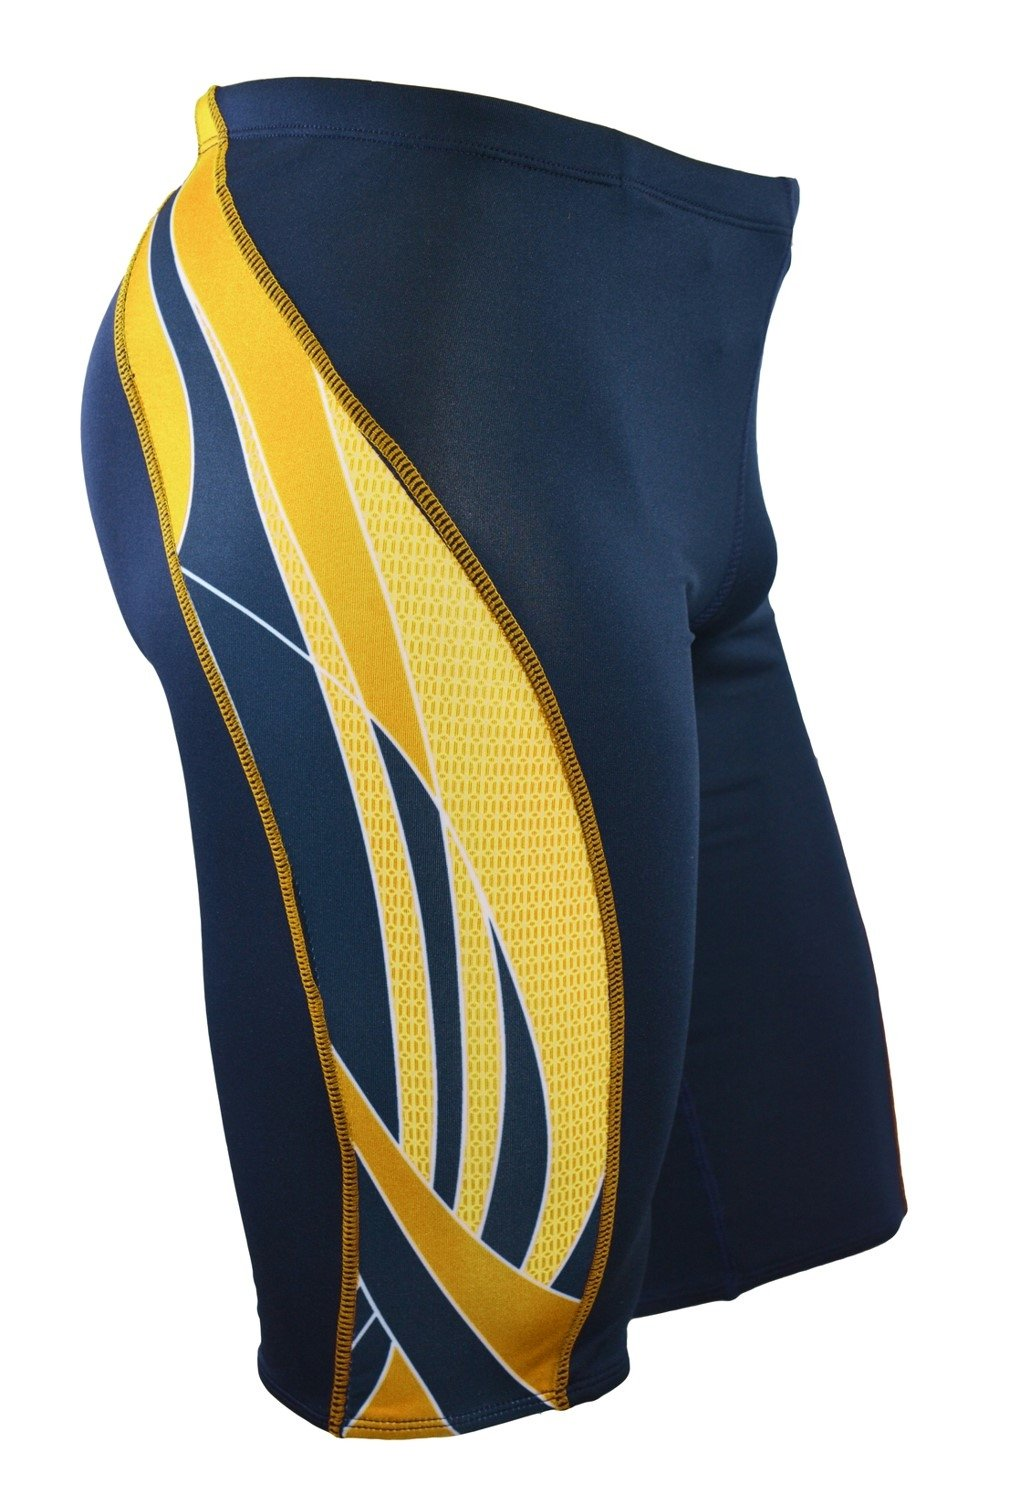 Adoretex Boy's/Men's Side Wings Swim Jammer Swimsuit (MJ009) - Navy/Gold - 30 by Adoretex